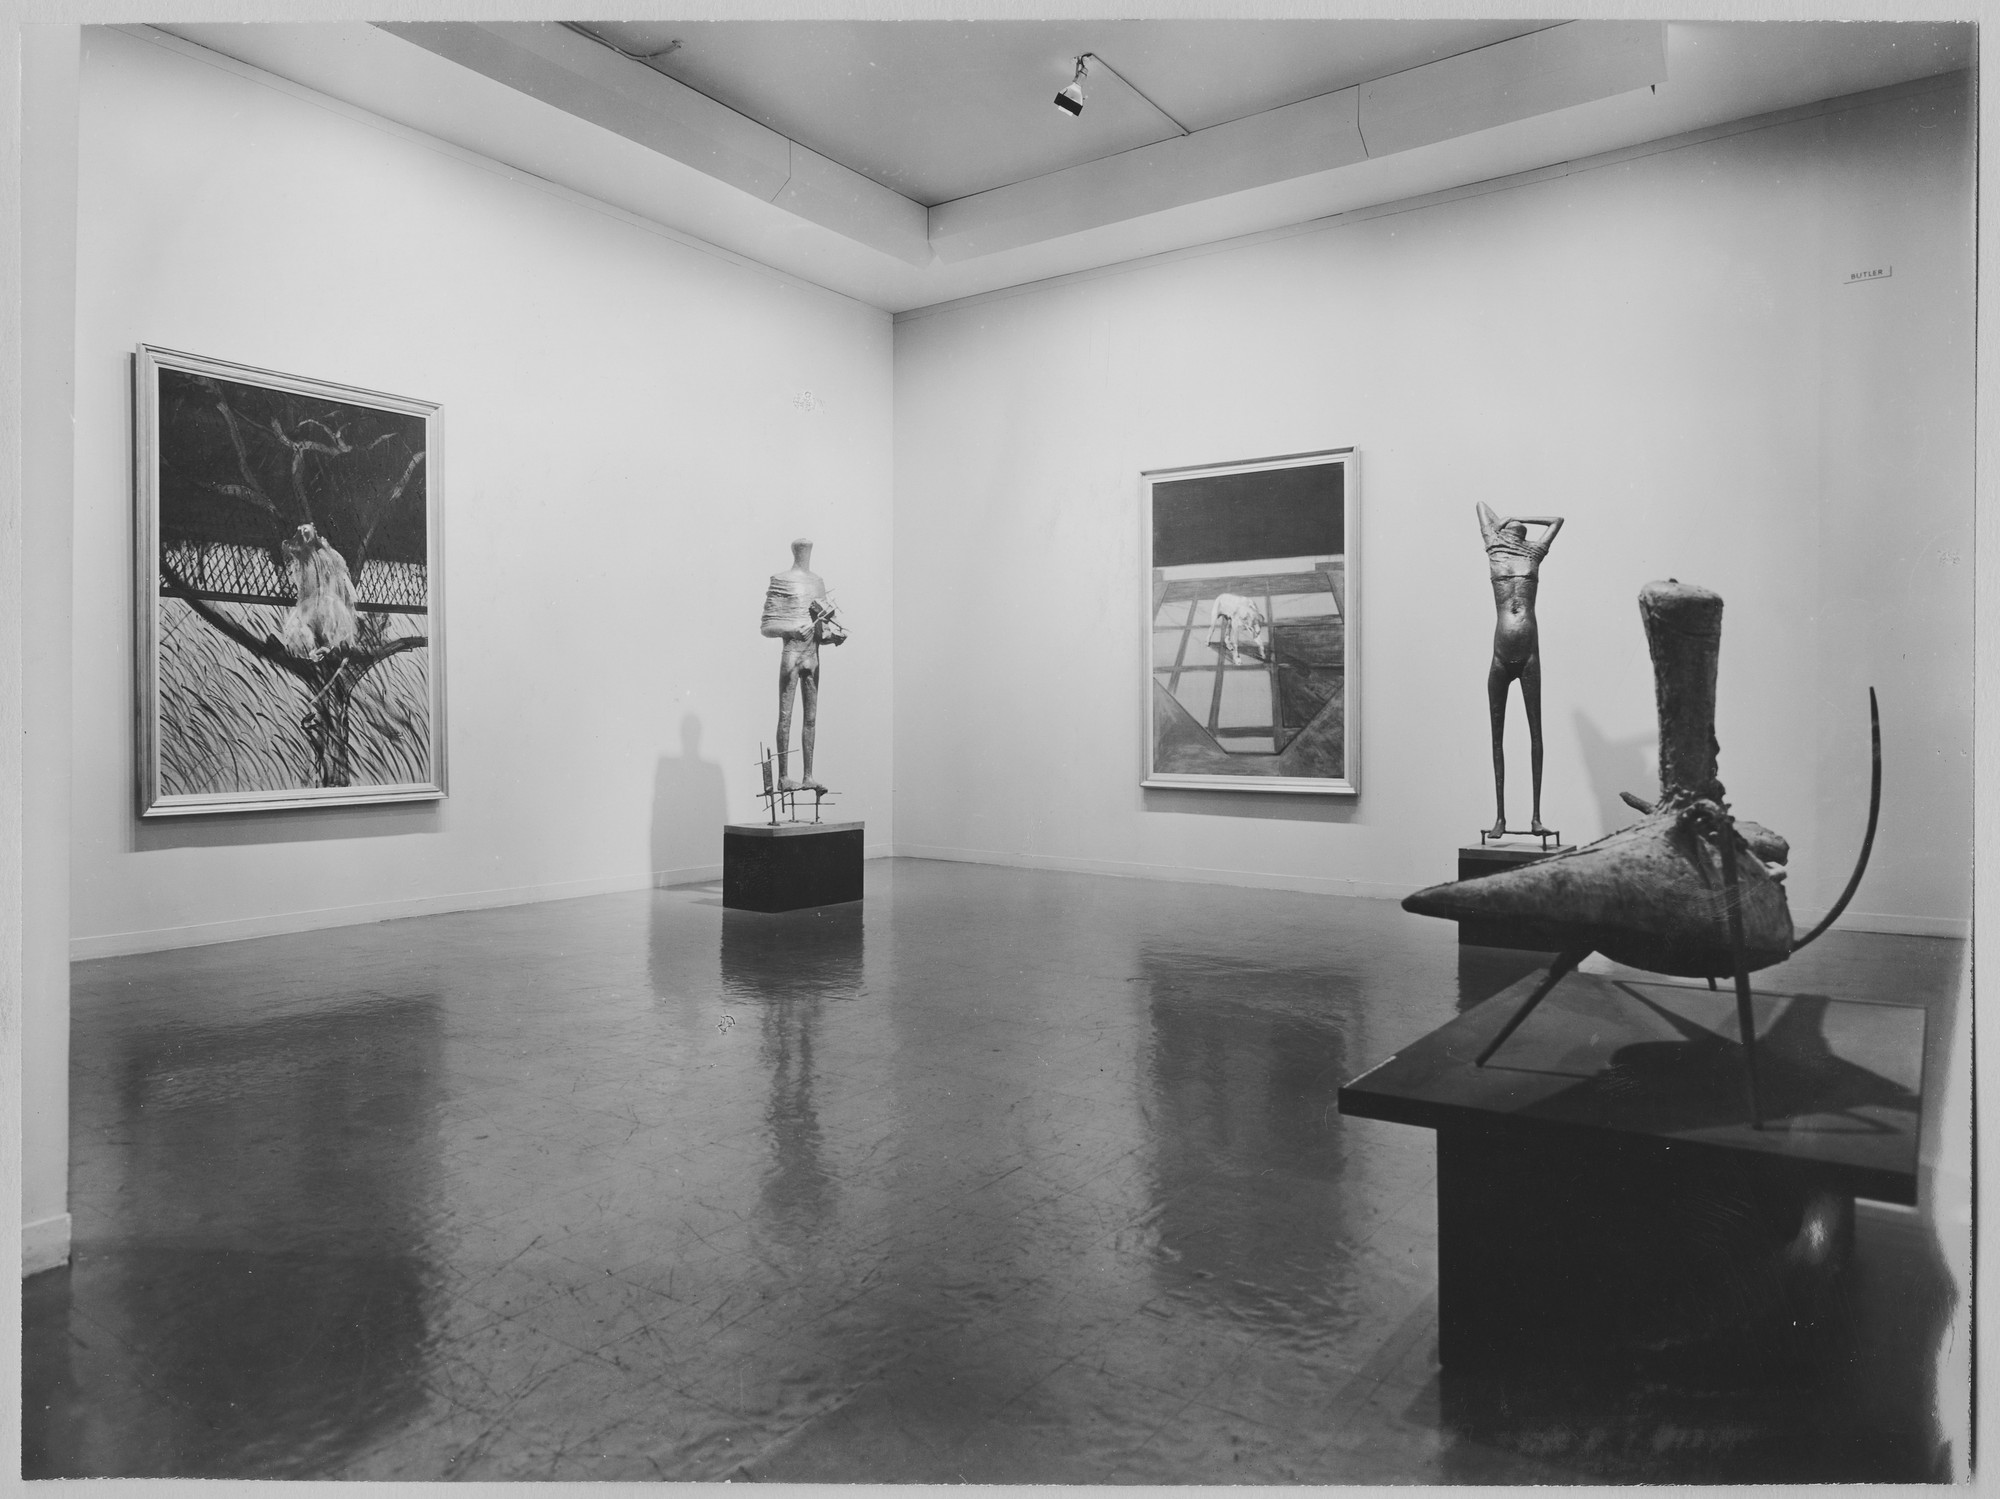 "Installation view of the exhibition, ""The New Decade:  22 European Painters and Sculptors."" May 10, 1955–August 7, 1955. Photographic Archive. The Museum of Modern Art Archives, New York. IN579.1. Photograph by Soichi Sunami."